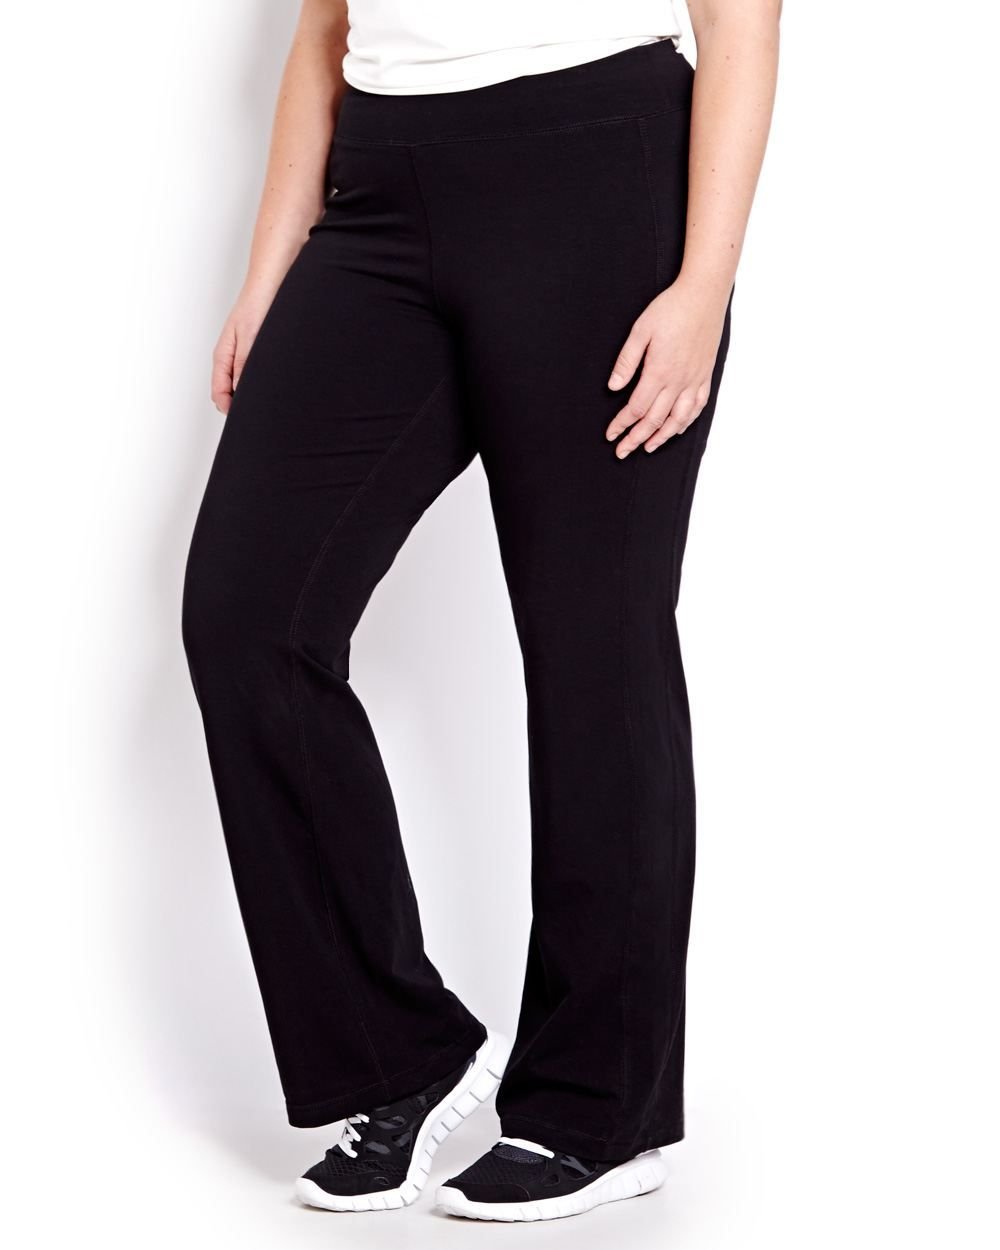 87c70ffbb7d4b Our favourite plus-size yoga pants from Nola by Addition Elle #Additionelle  #plussizefashion #plussizeyoga